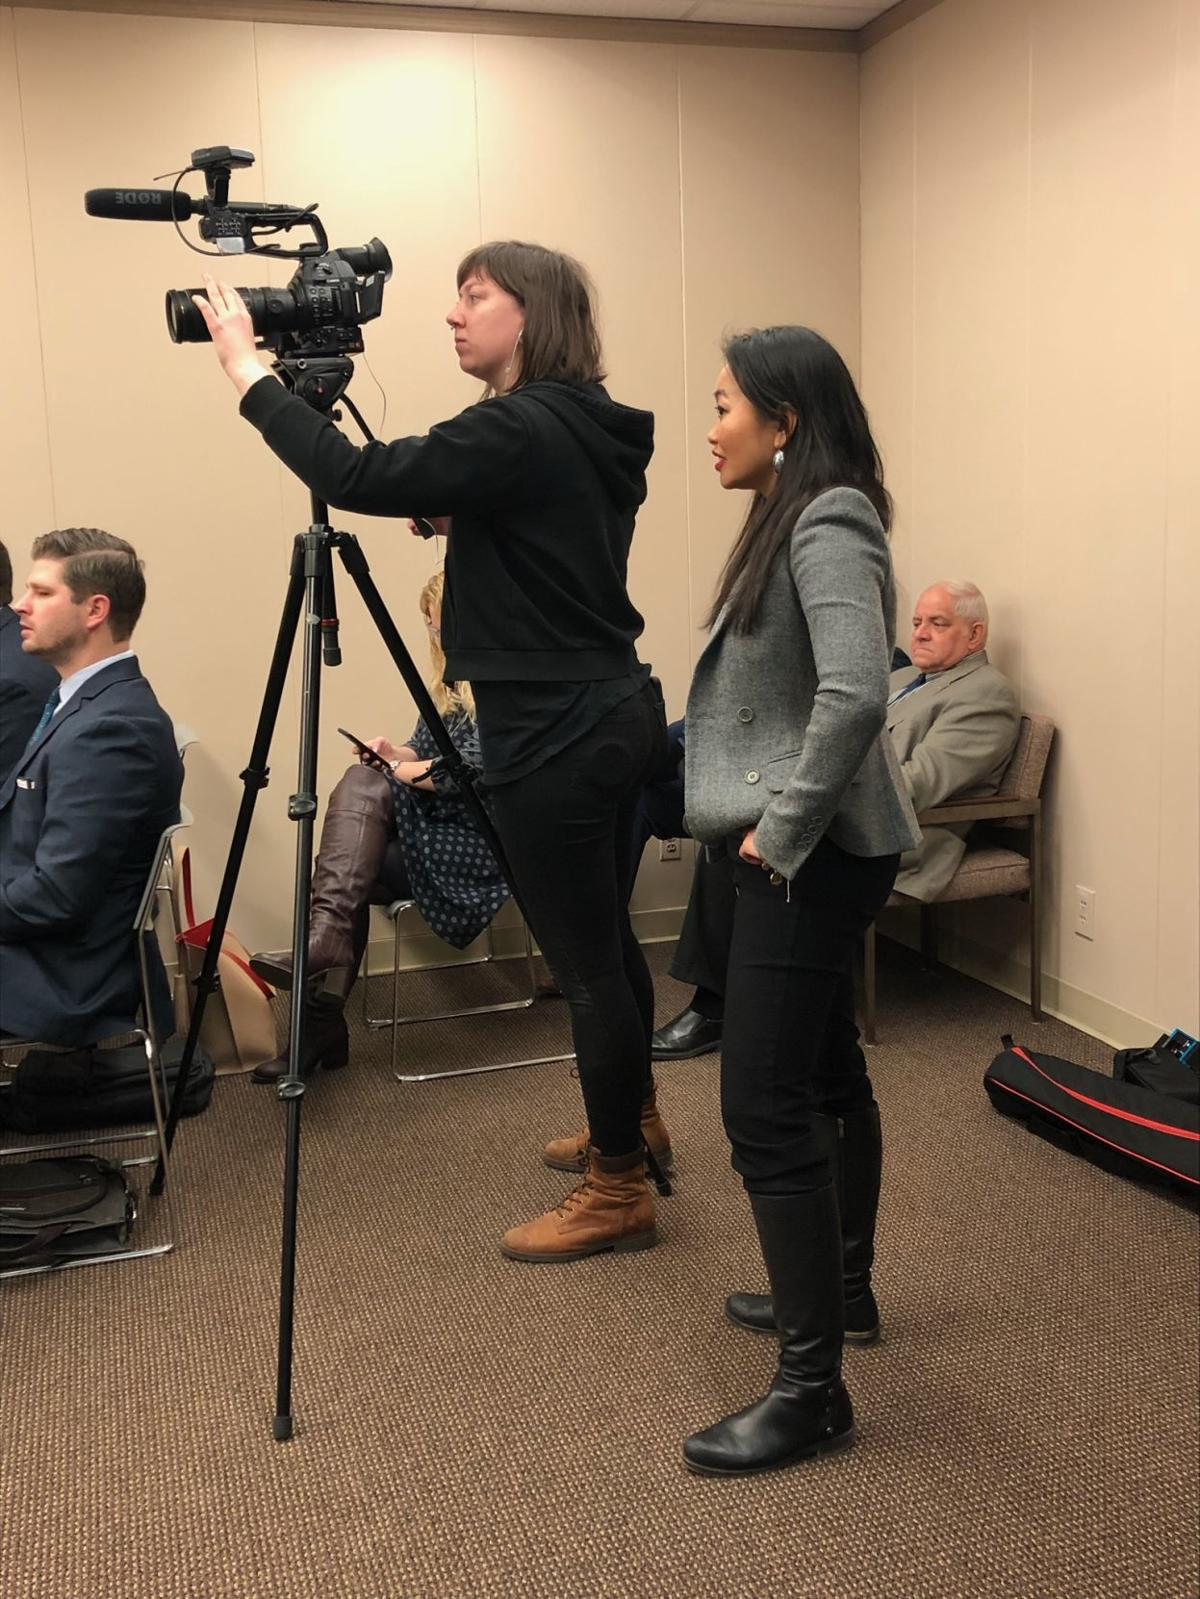 New Dyer state representative attracting national media attention